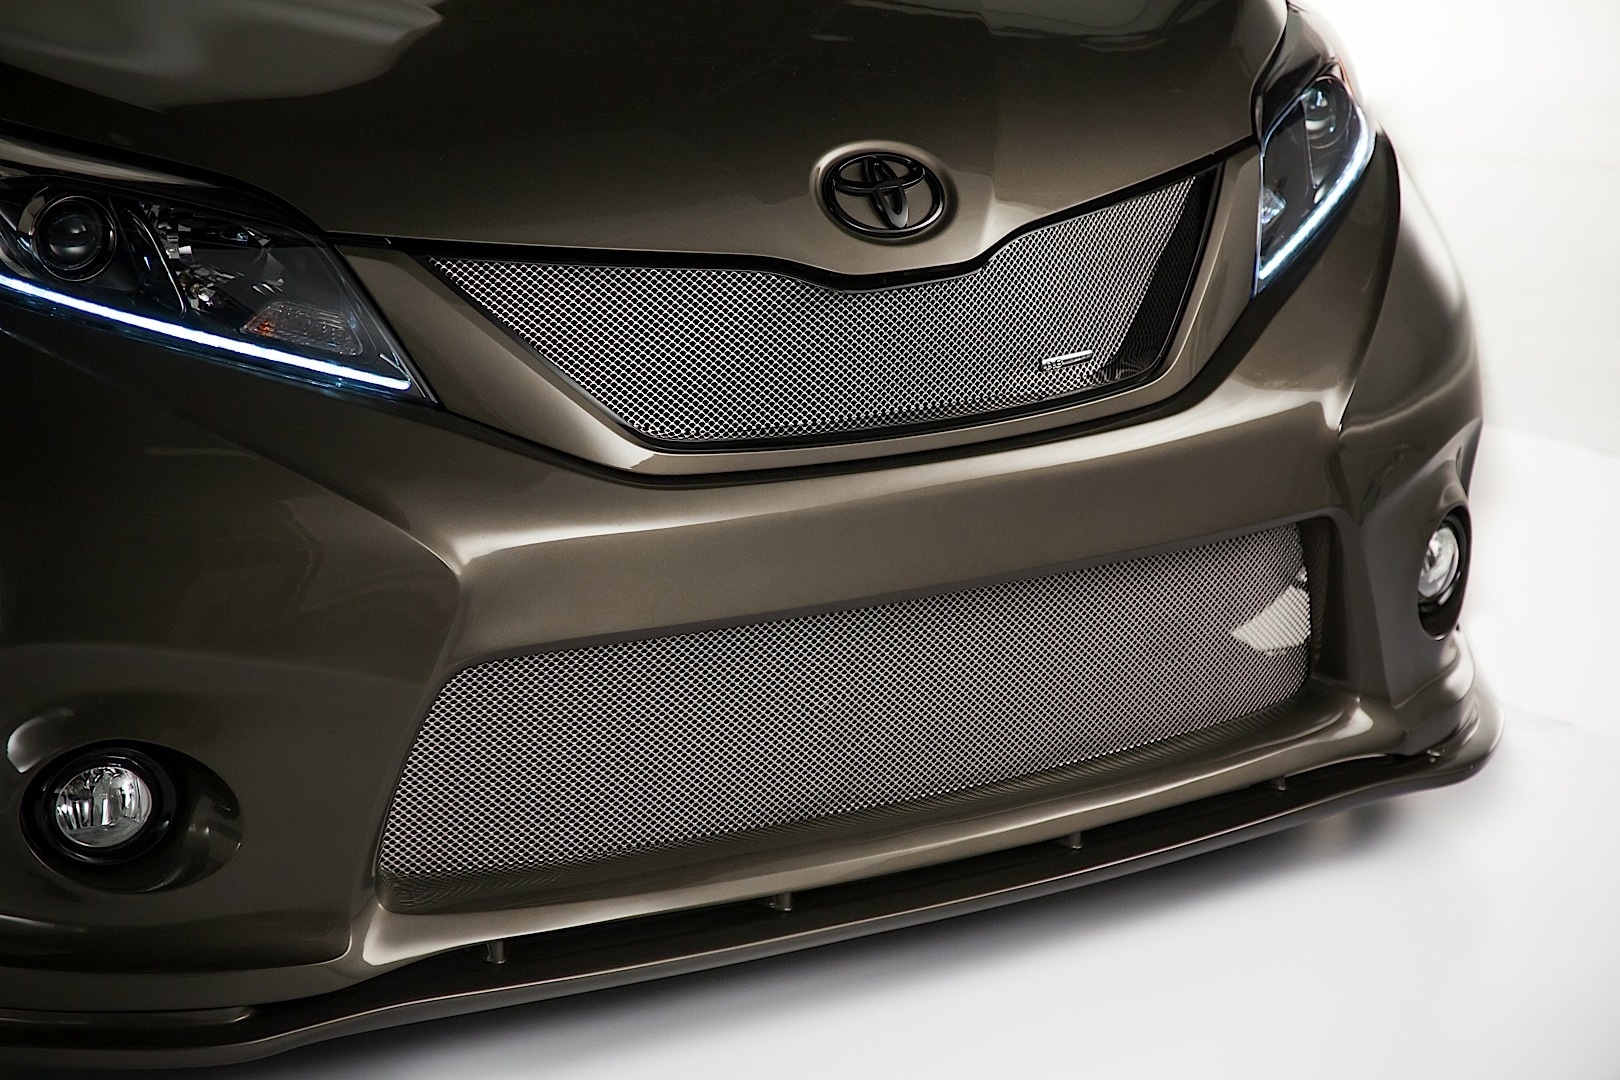 brand new camry hybrid agya trd merah toyota bringing widebody sienna, yaris, baja trucks and ft ...